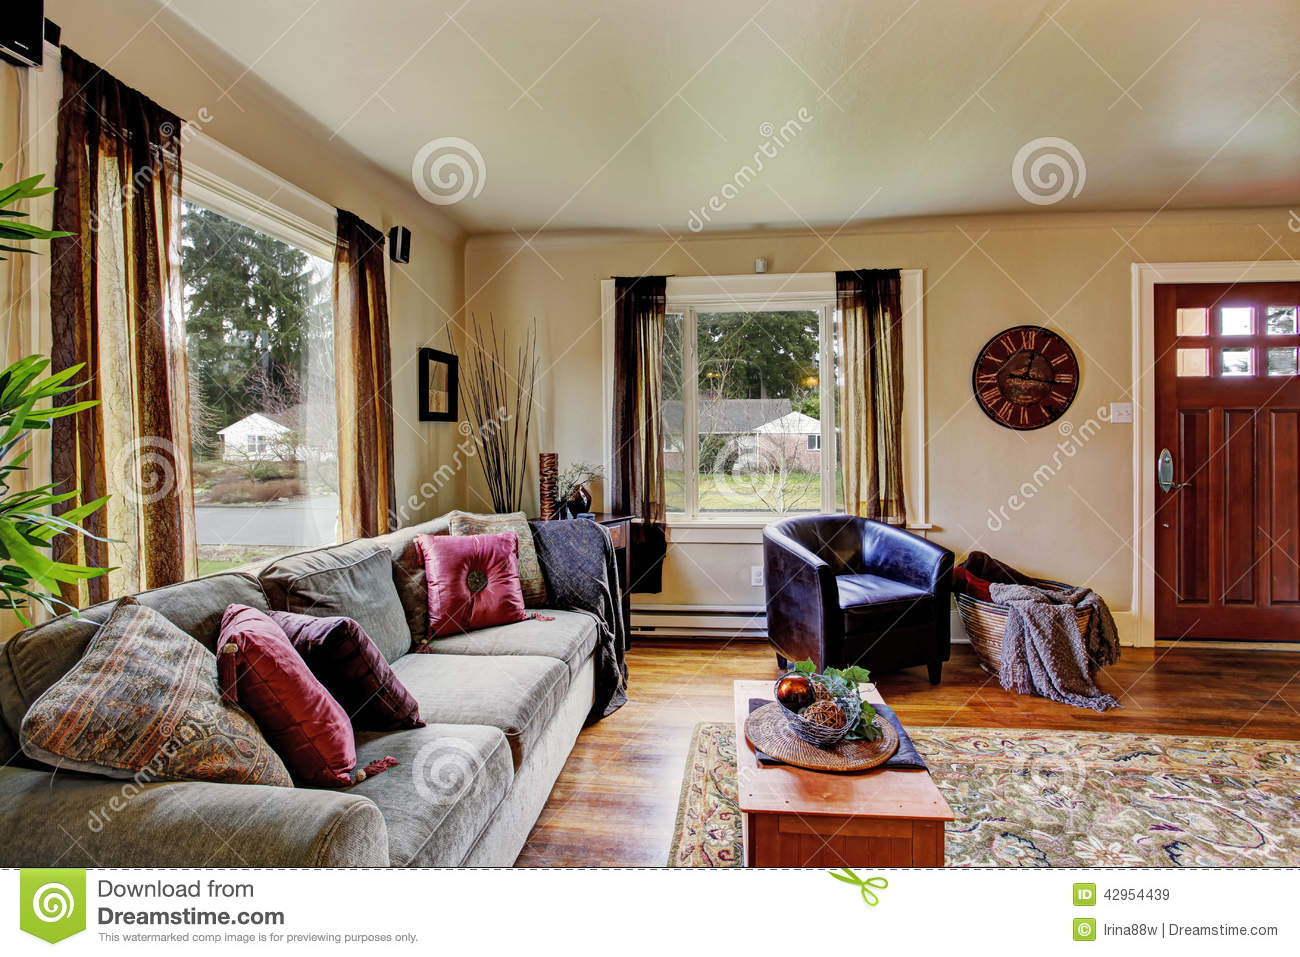 Int rieur de salon dans la maison am ricaine photo stock image 42954439 for Interieur maison americaine